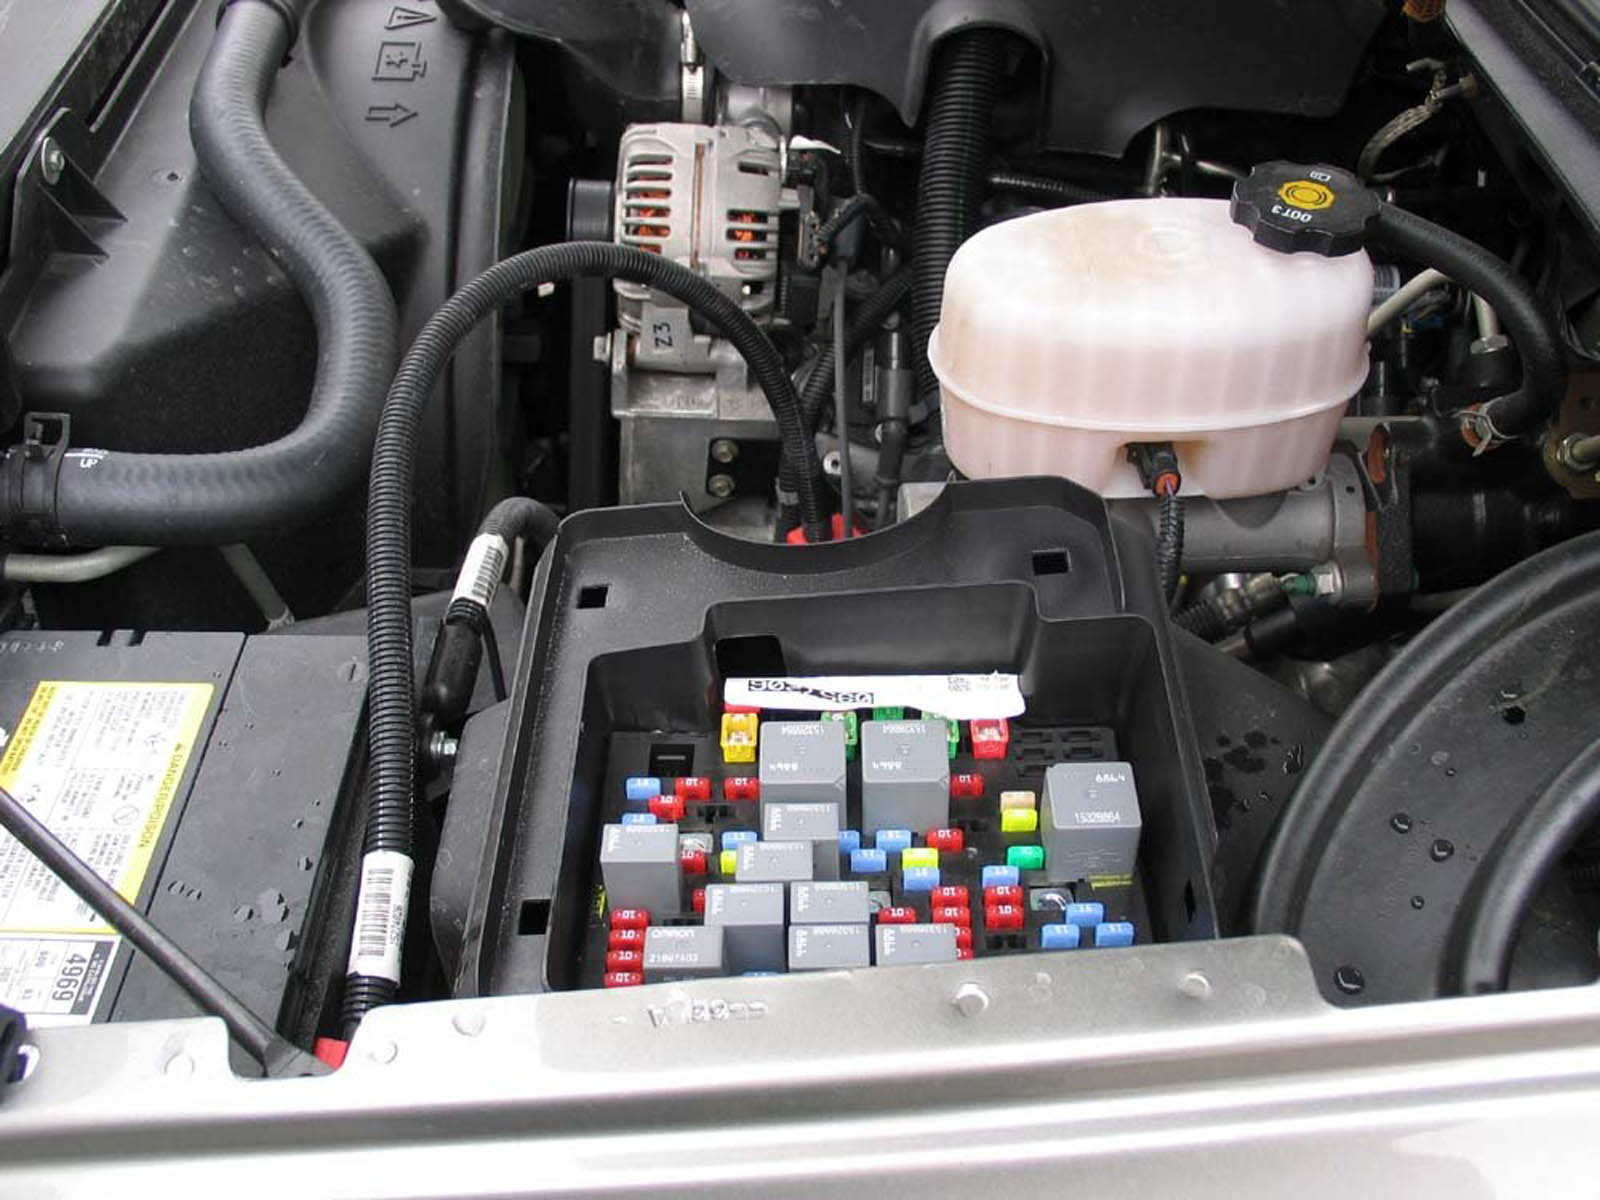 MMMay 27 Fuse Box 04 69845 chevrolet silverado gmt800 1999 2006 fuse box diagram chevroletforum 2001 chevy silverado fuse panel diagram at mr168.co